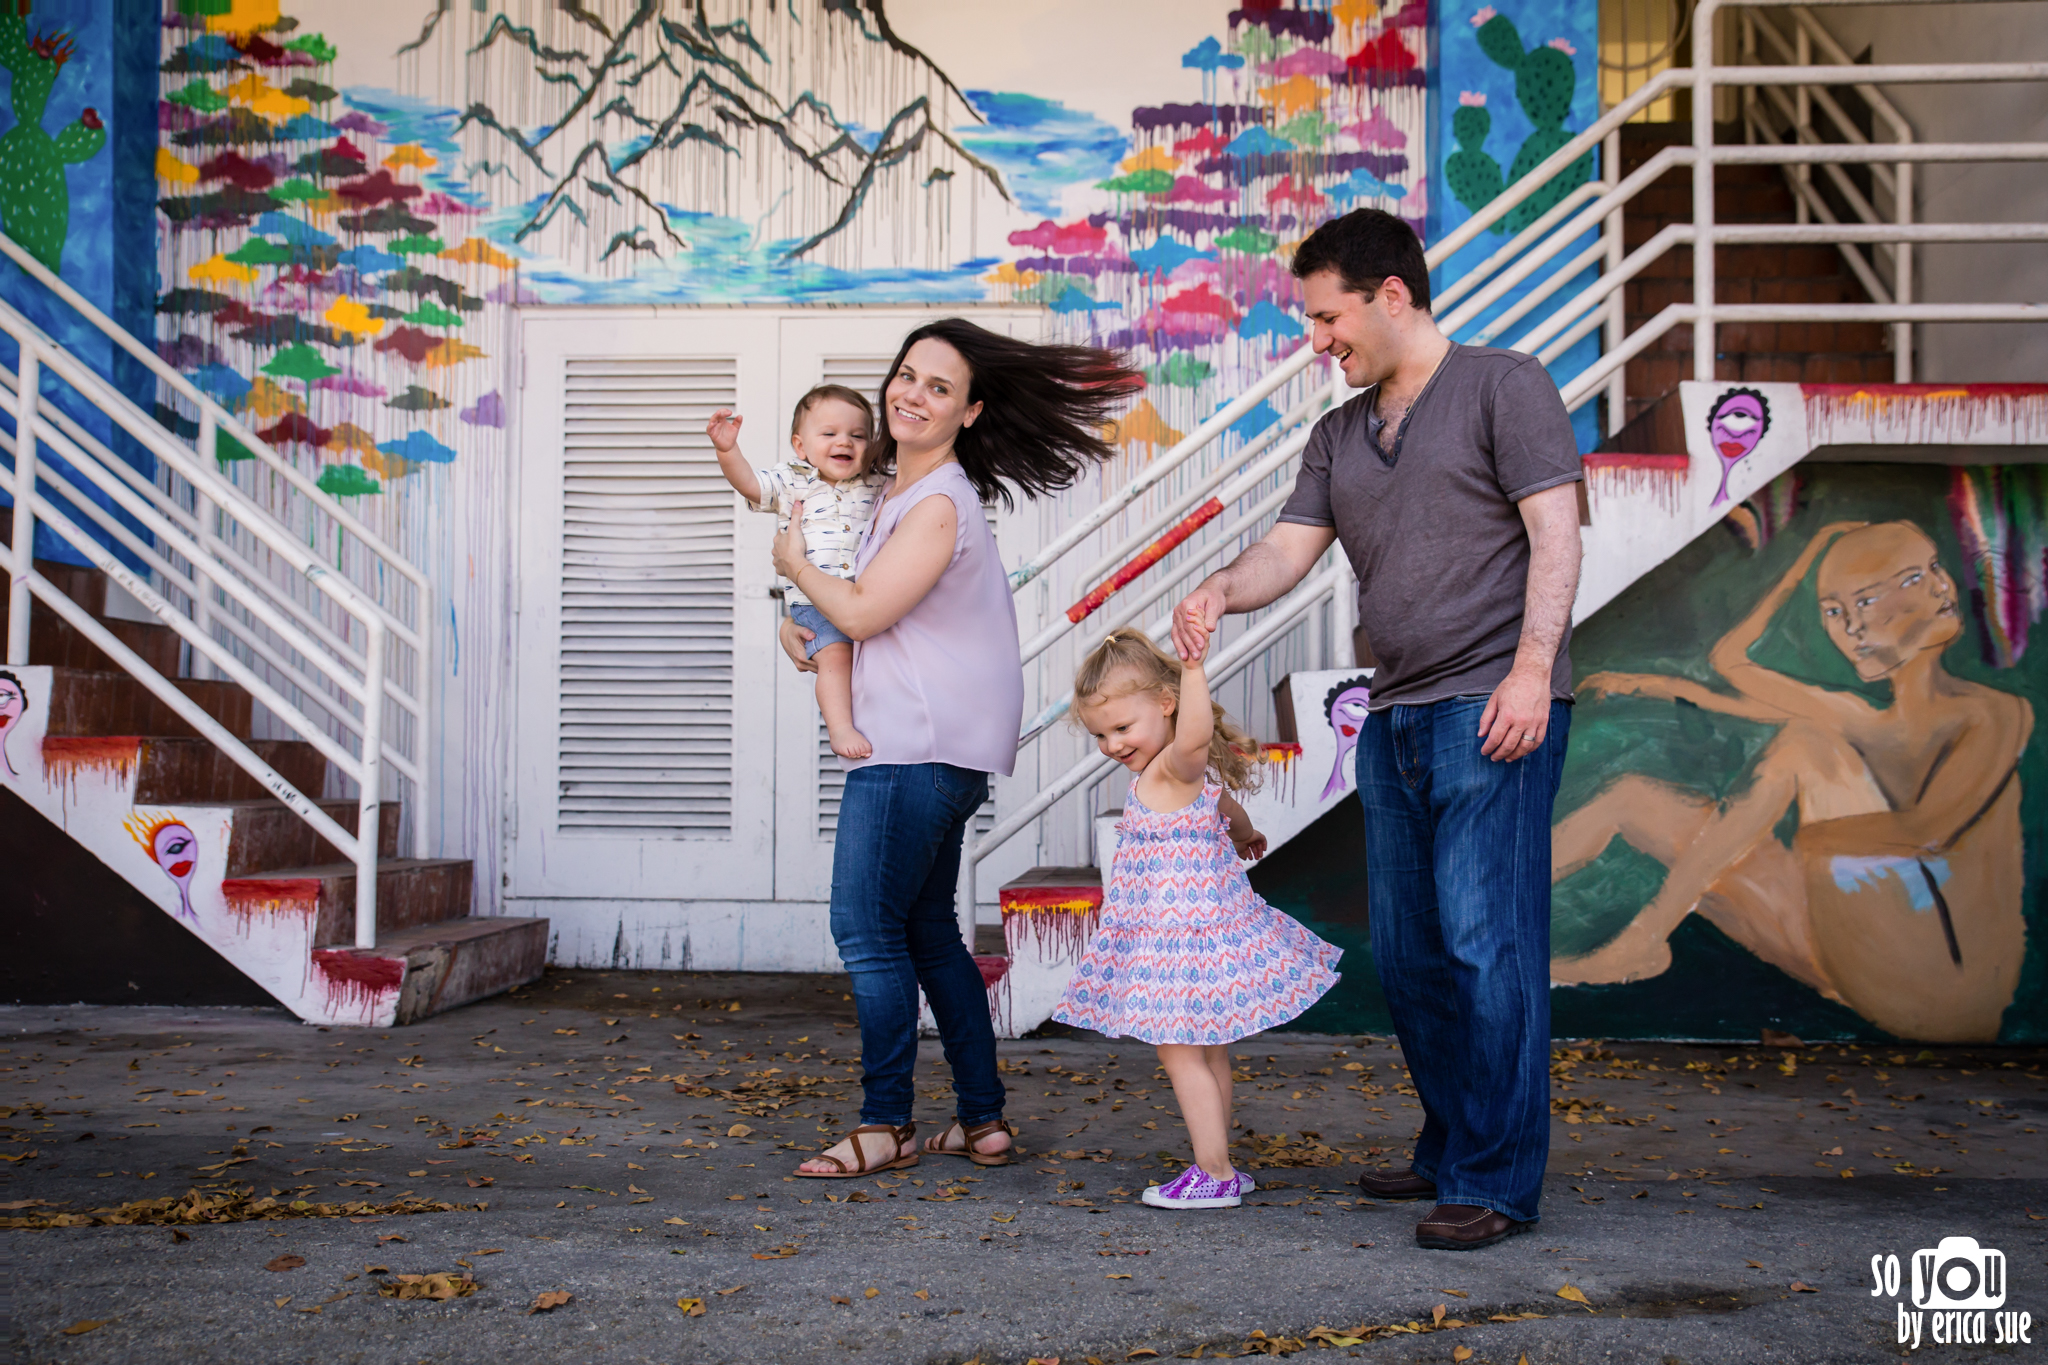 lifestyle-family-photography-miami-fl-so-you-by-erica-sue--3.jpg